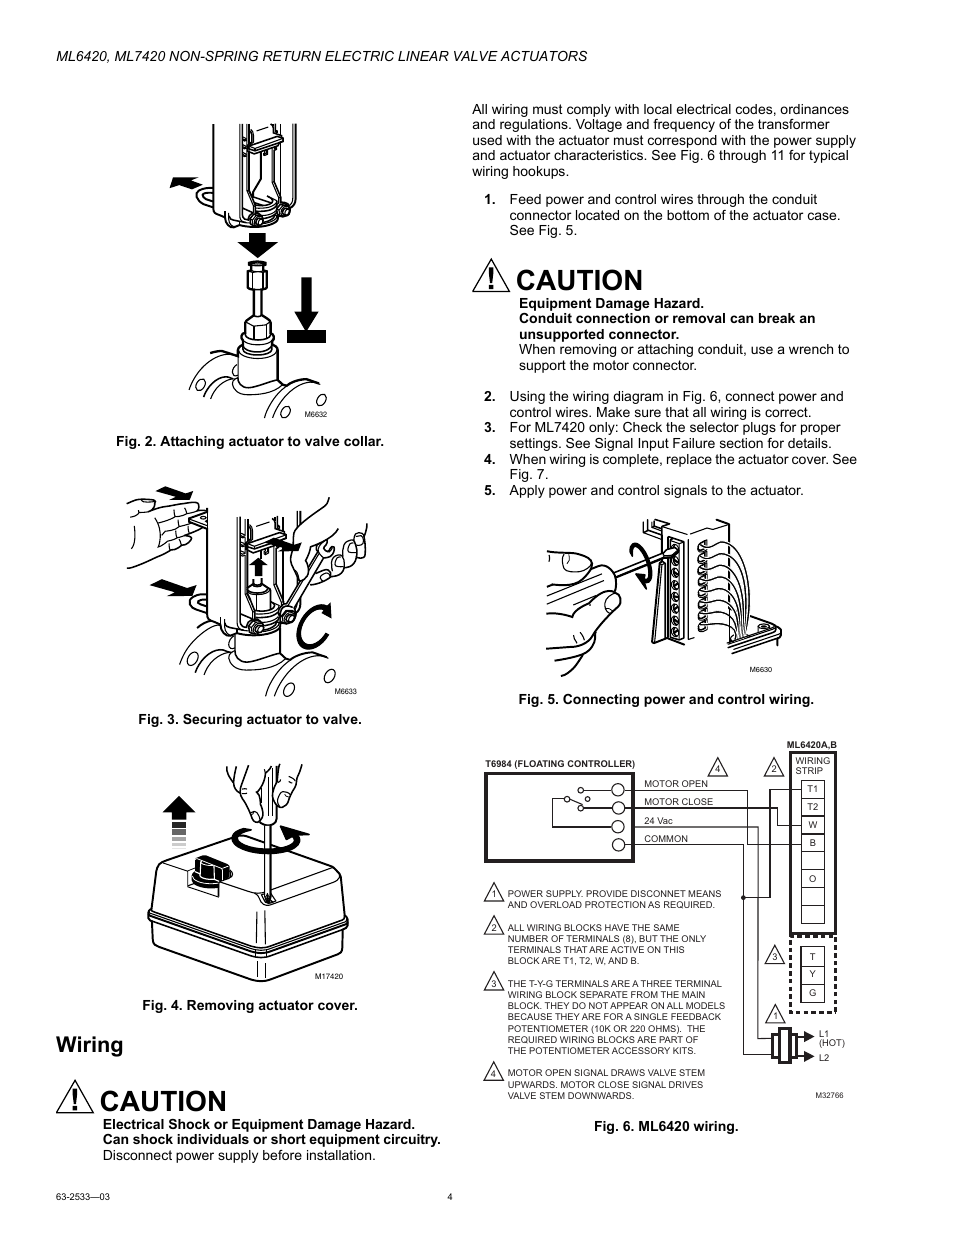 Wiring Caution Honeywell Ml6420 User Manual Page 4 8 Actuator Diagram